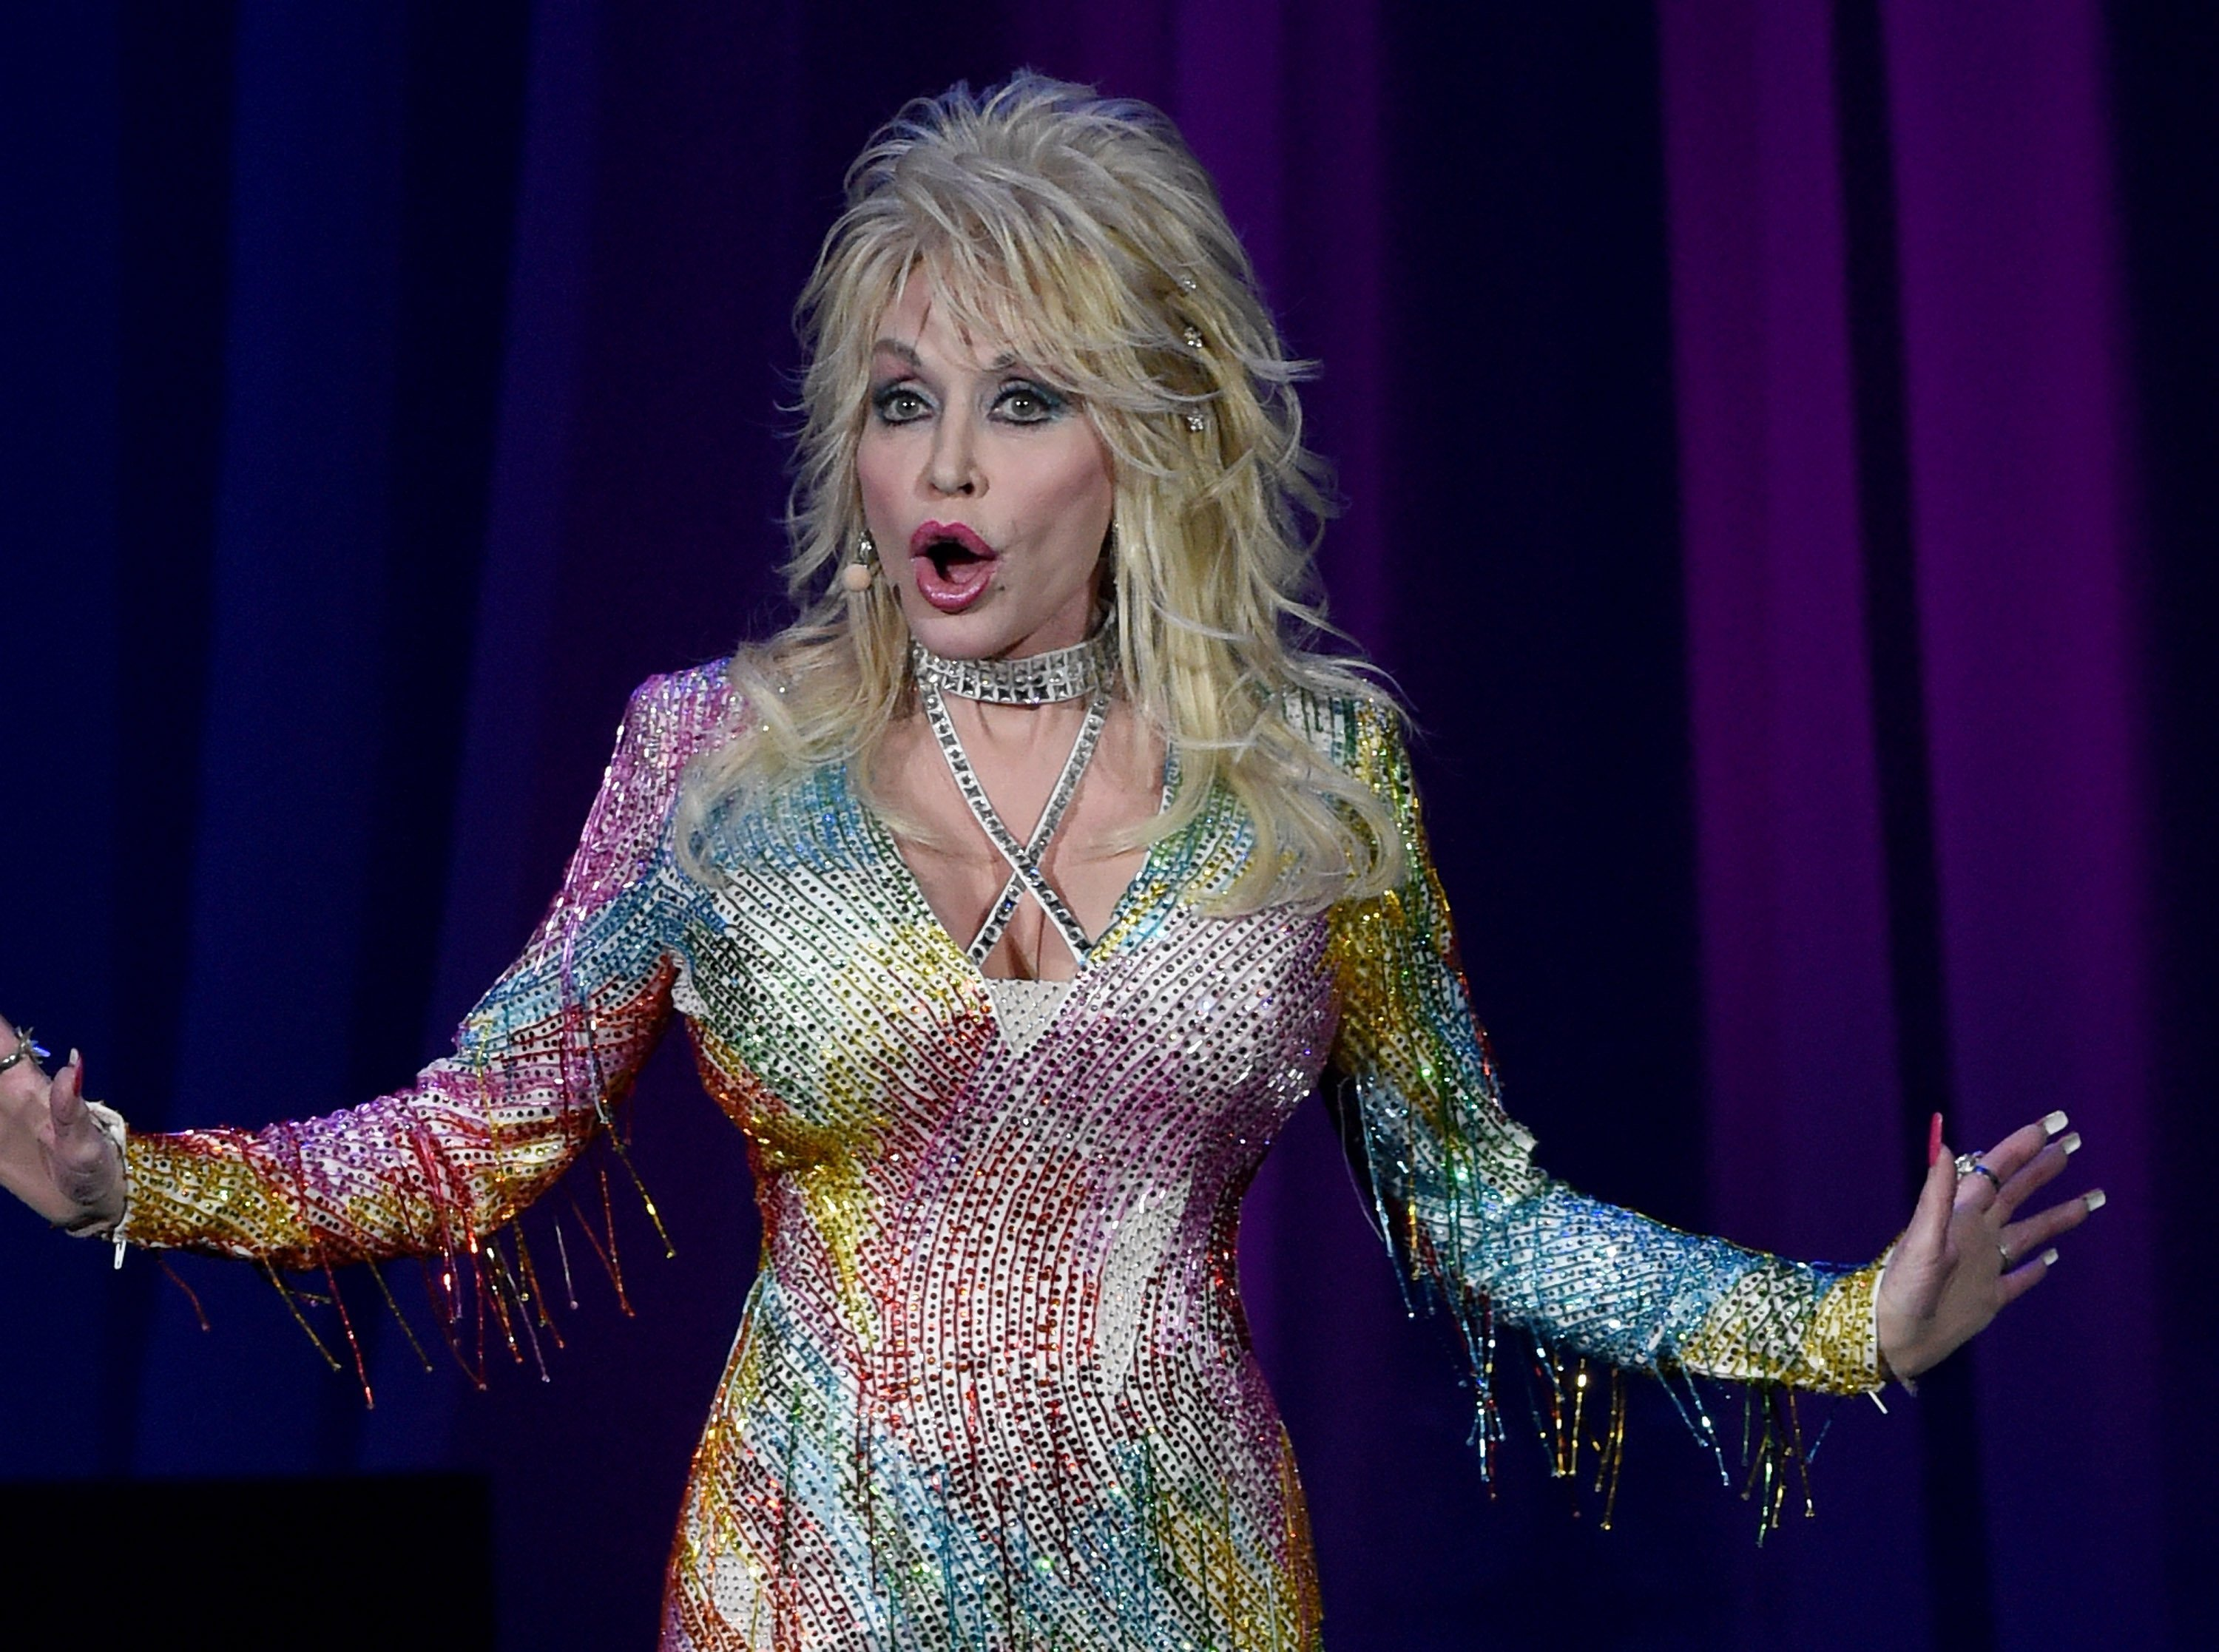 Dolly Parton: Pure & Simple Benefiting The Opry Trust Fund at Ryman Auditorium on August 1, 2015. | Photo: GettyImages